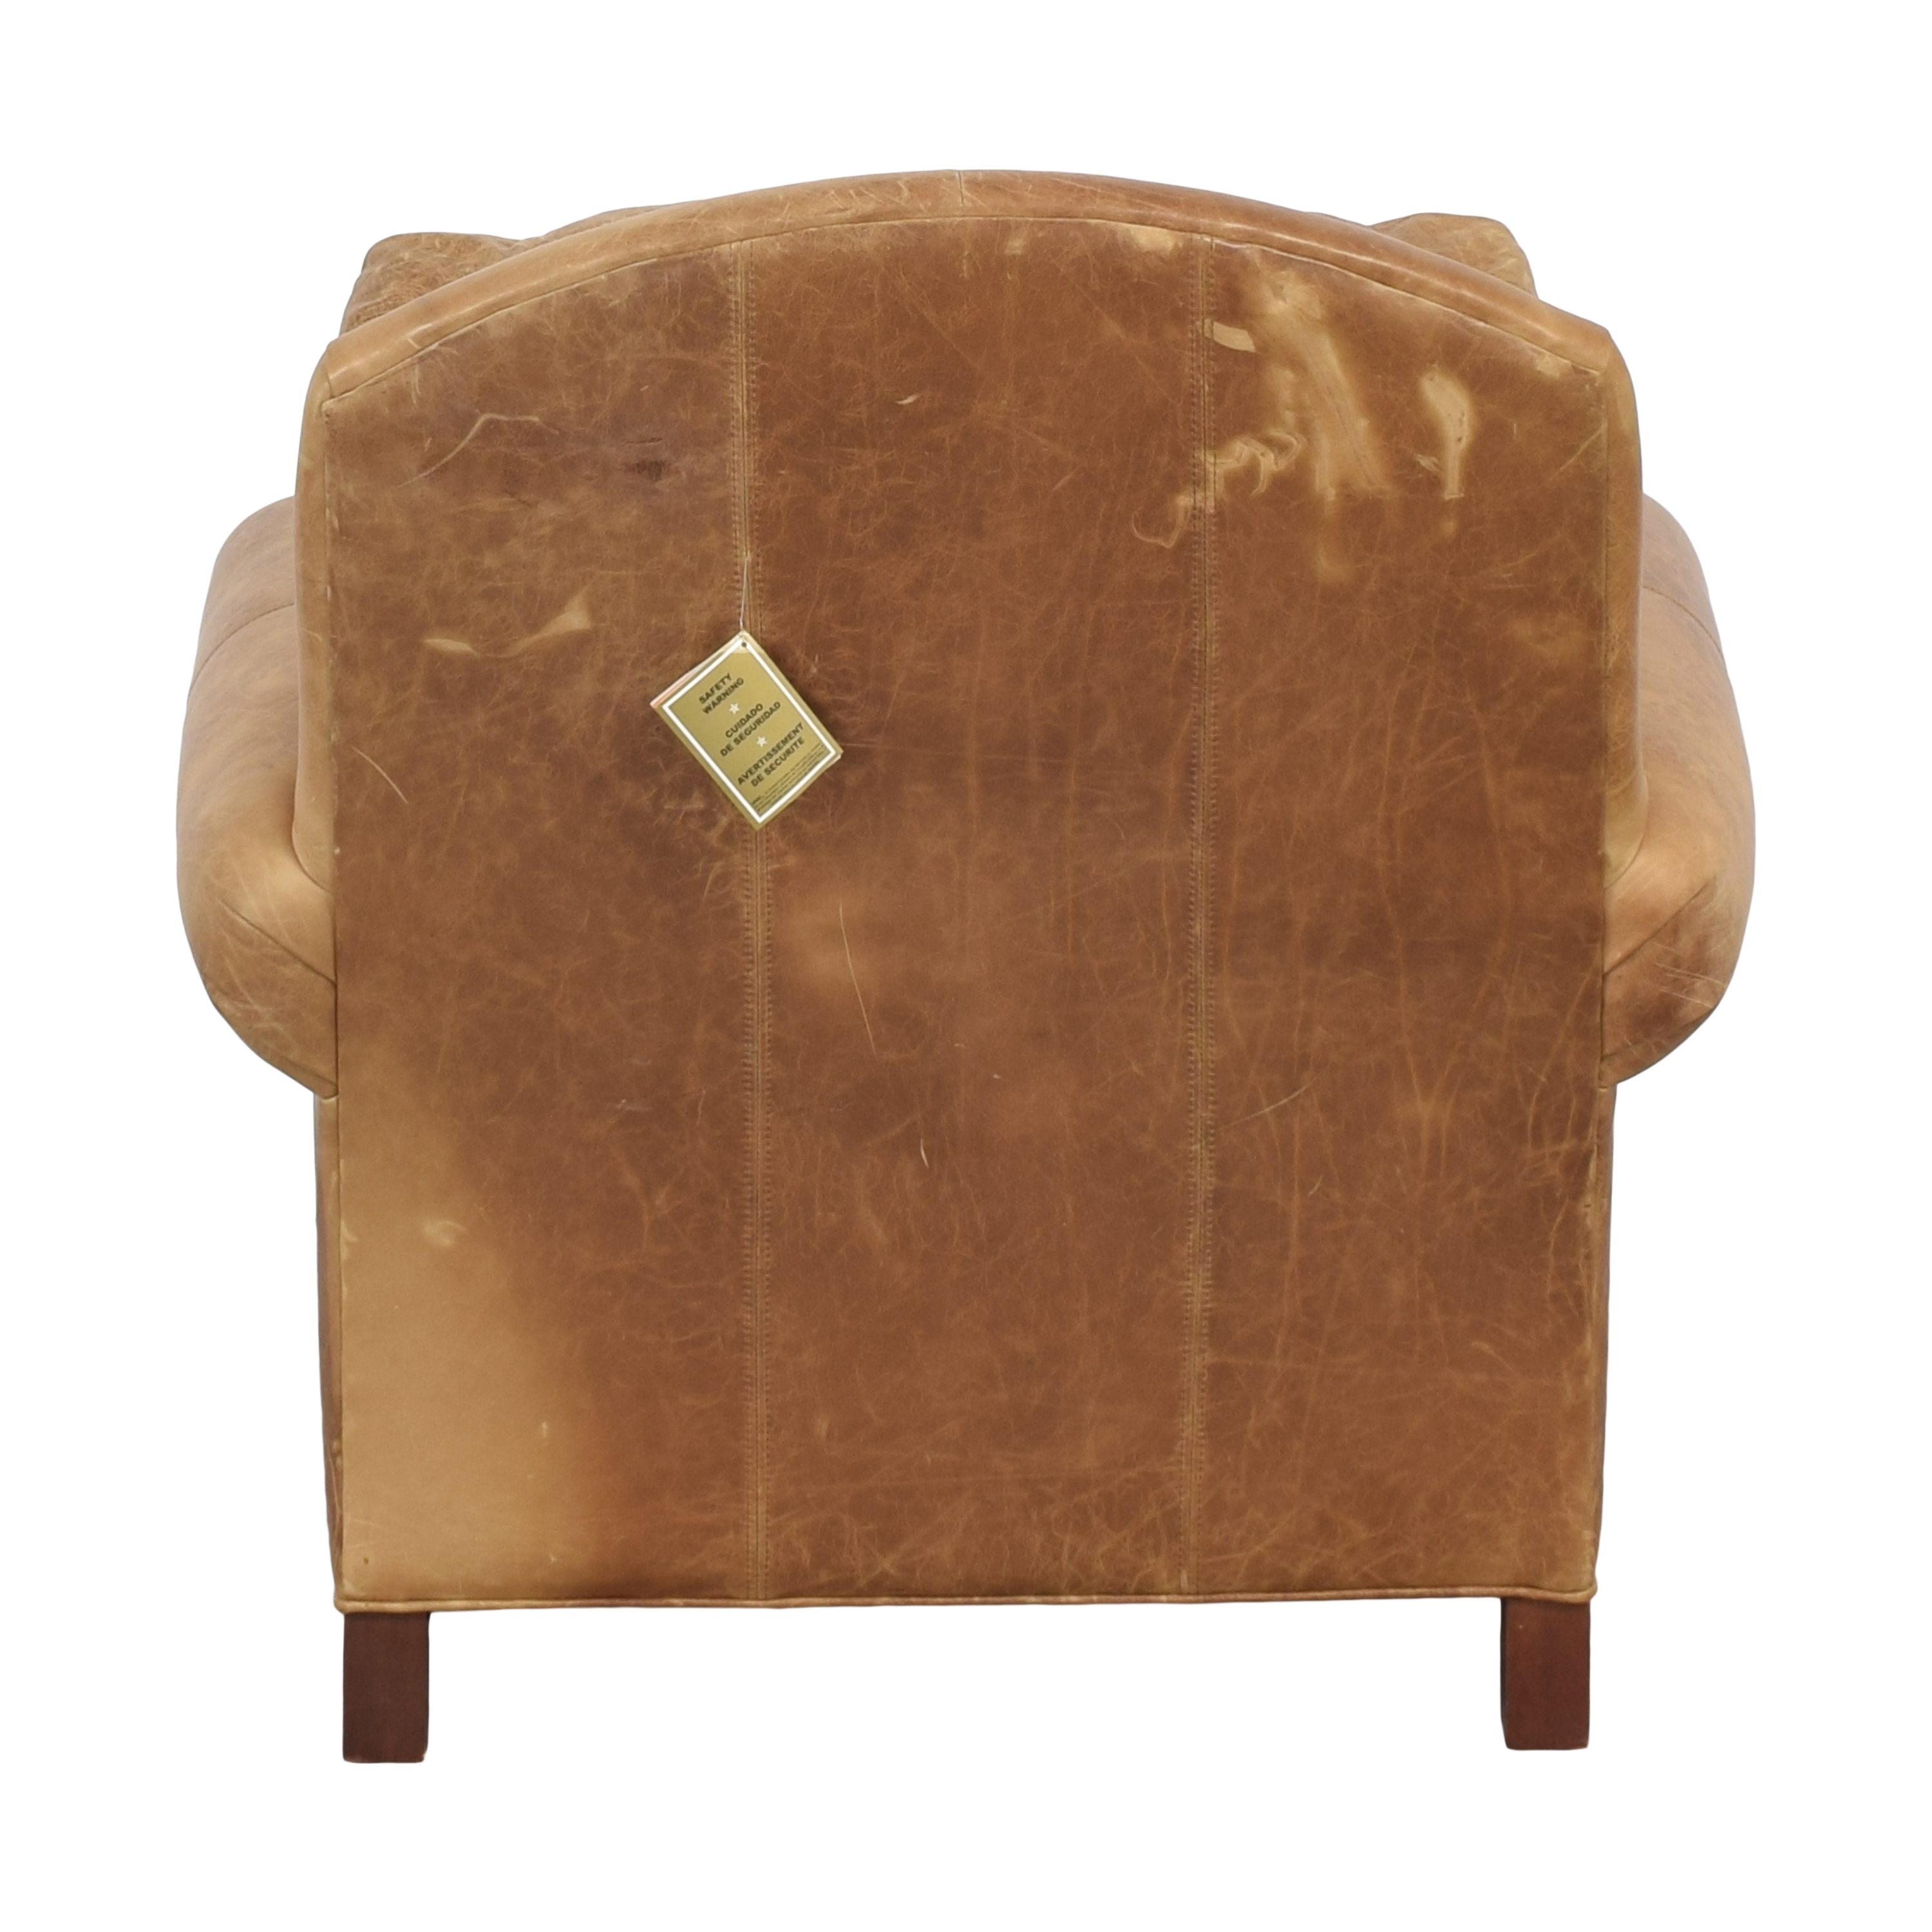 Ethan Allen Ethan Allen Lounge Chair and Ottoman coupon